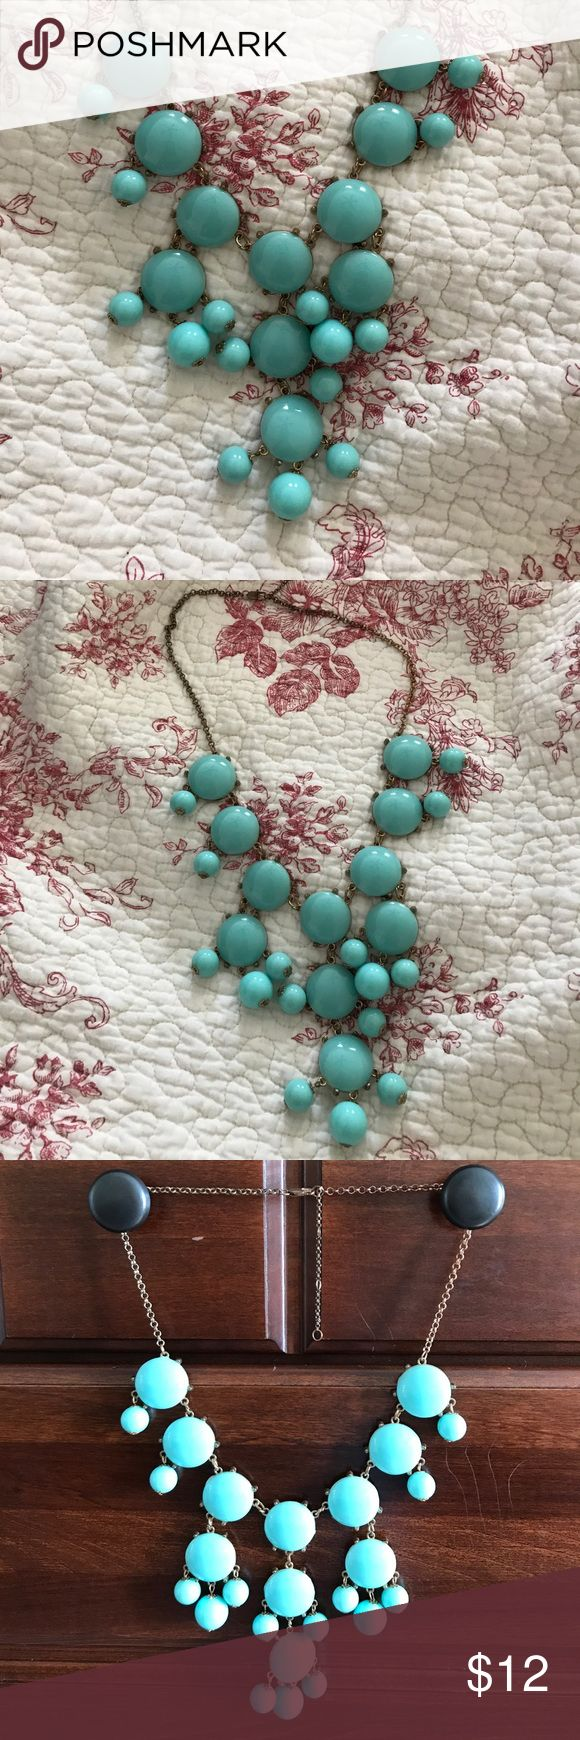 Bubble necklace turquoise Like new gold and turquoise bubble necklace. Beautiful during the summer! Jewelry Necklaces